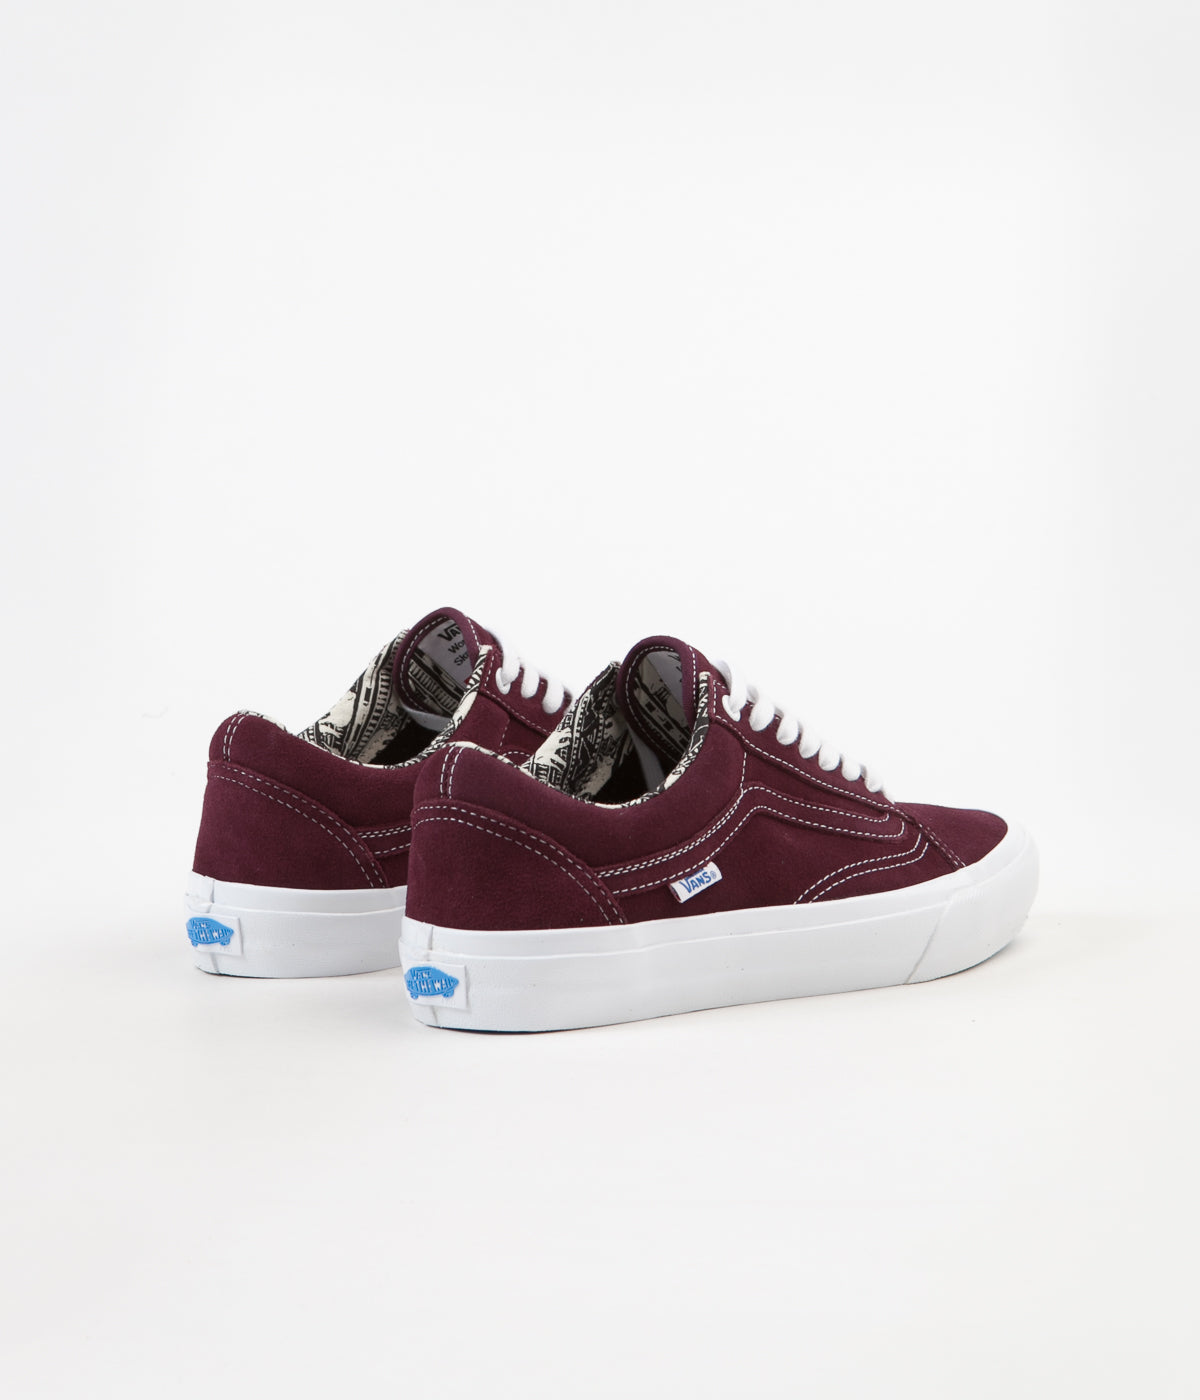 df14e1a7d6 ... Vans Old Skool Pro (Ray Barbee) Shoes - OG Burgundy ...